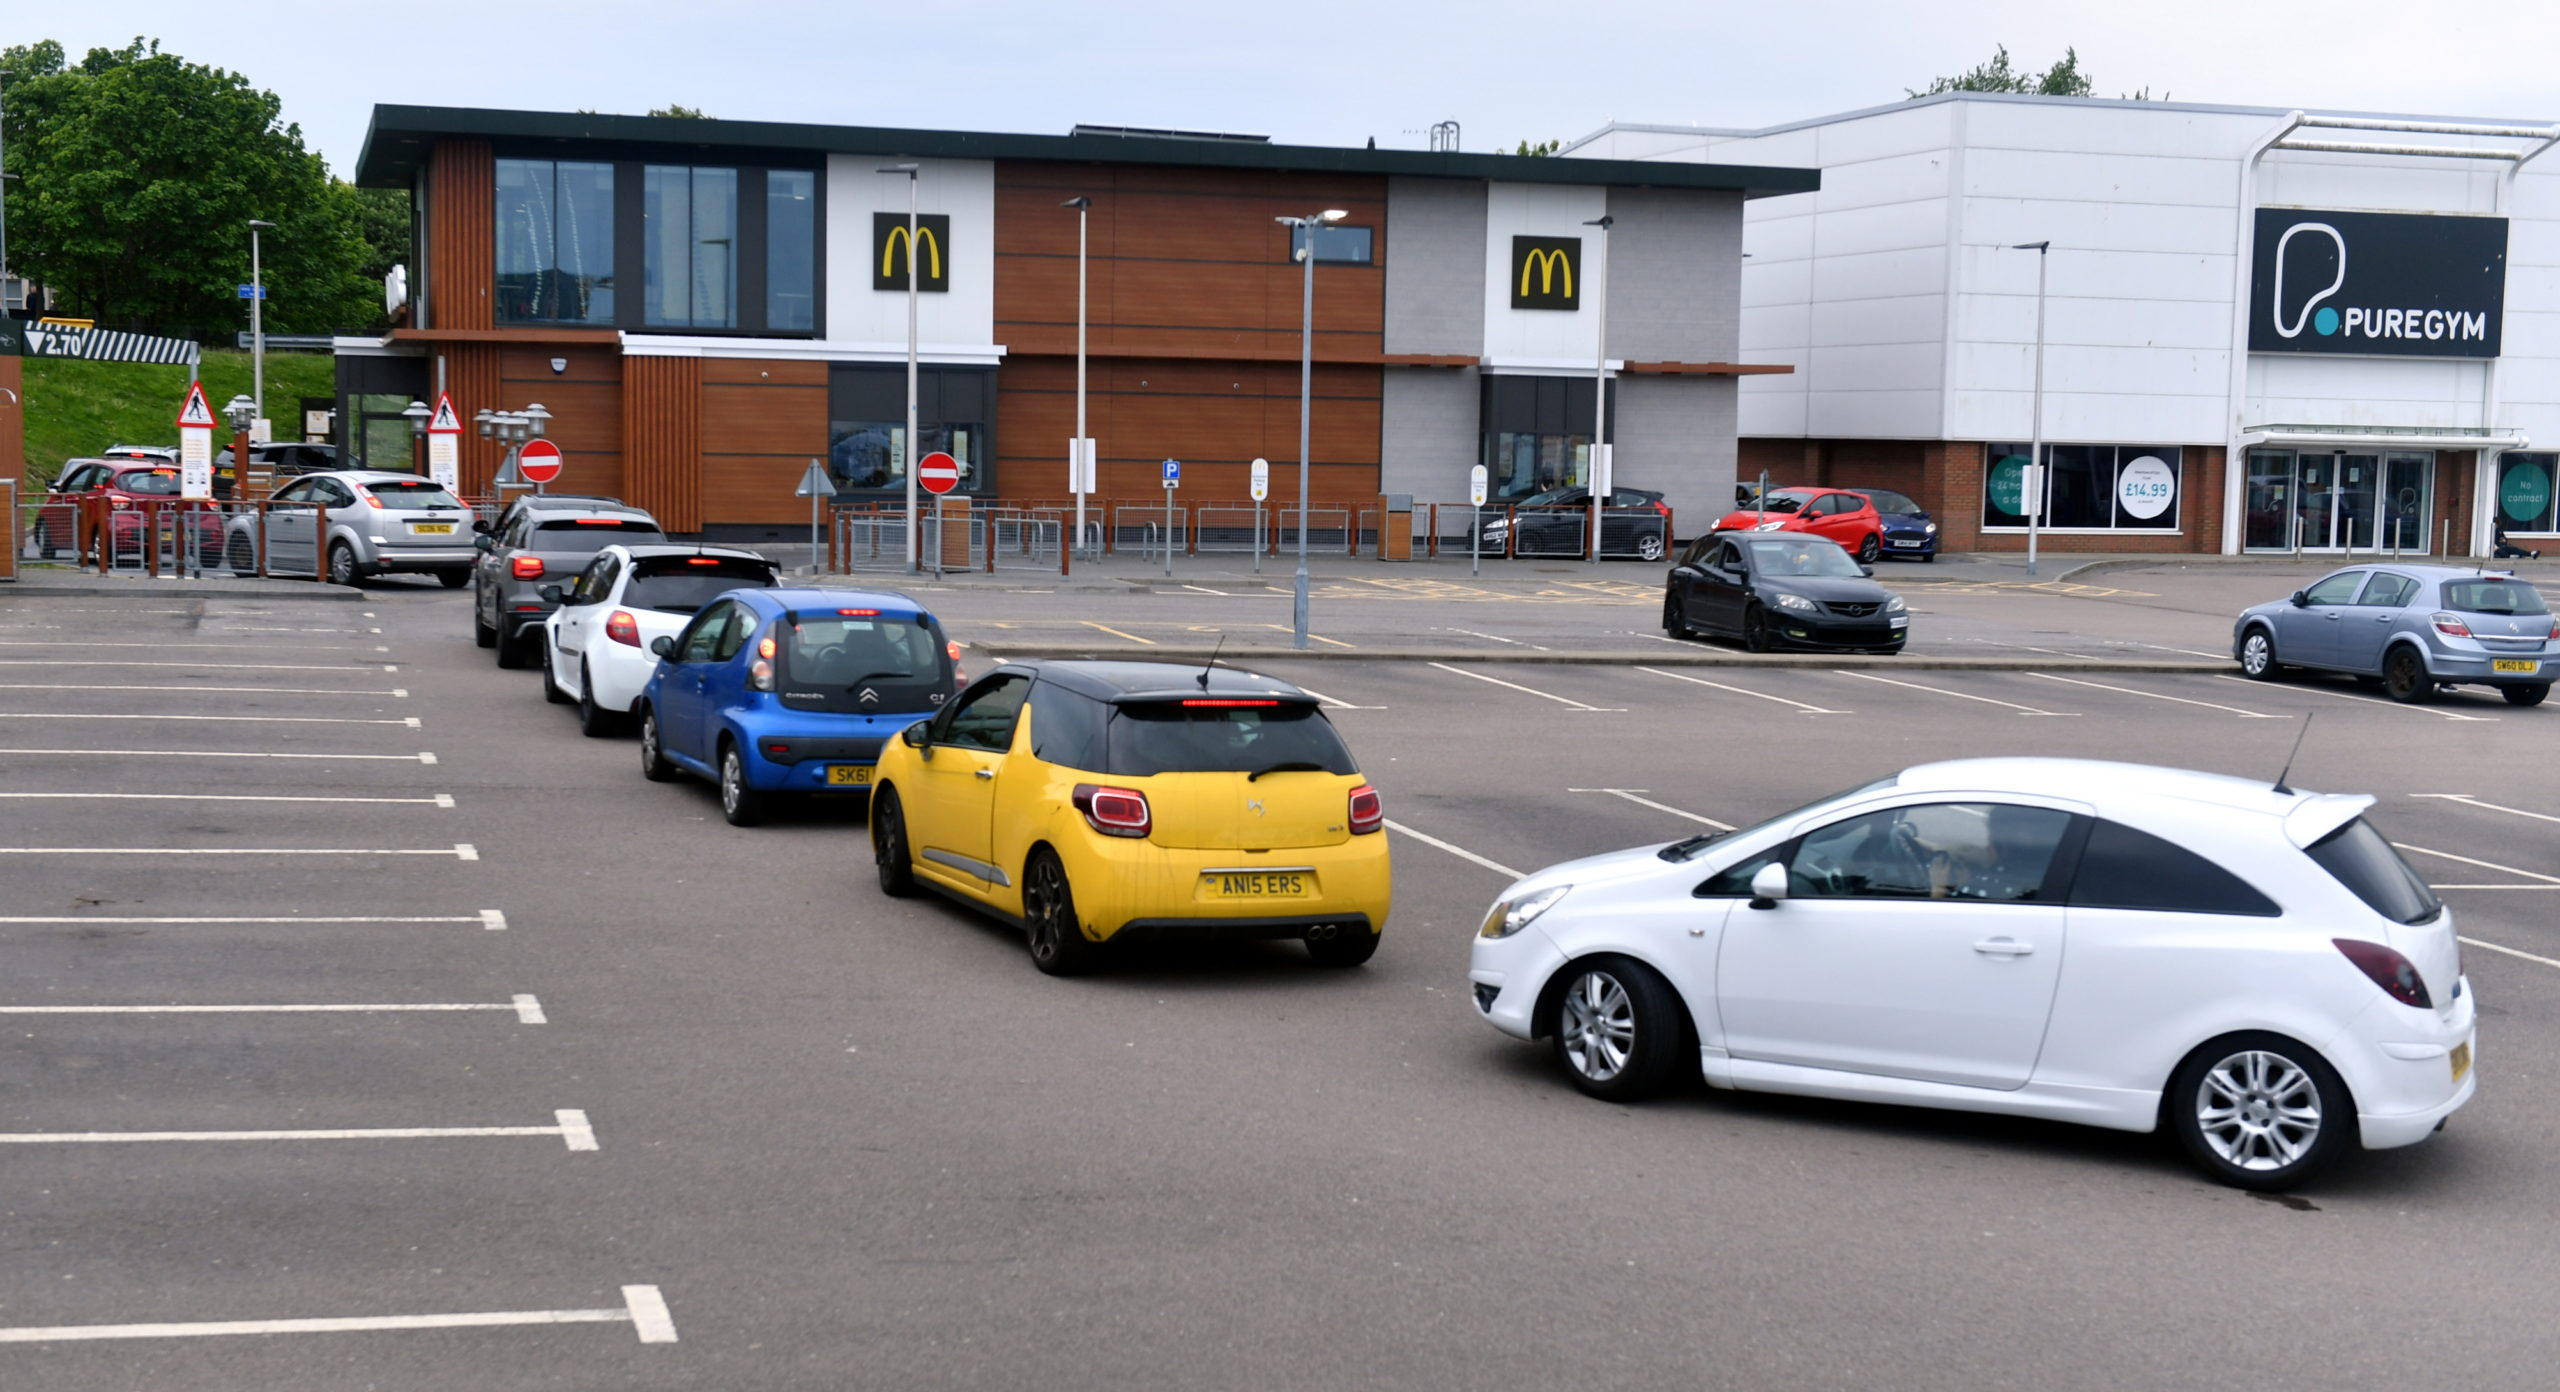 McDonald's at Kittybrewster retail park. Picture by Chris Sumner.